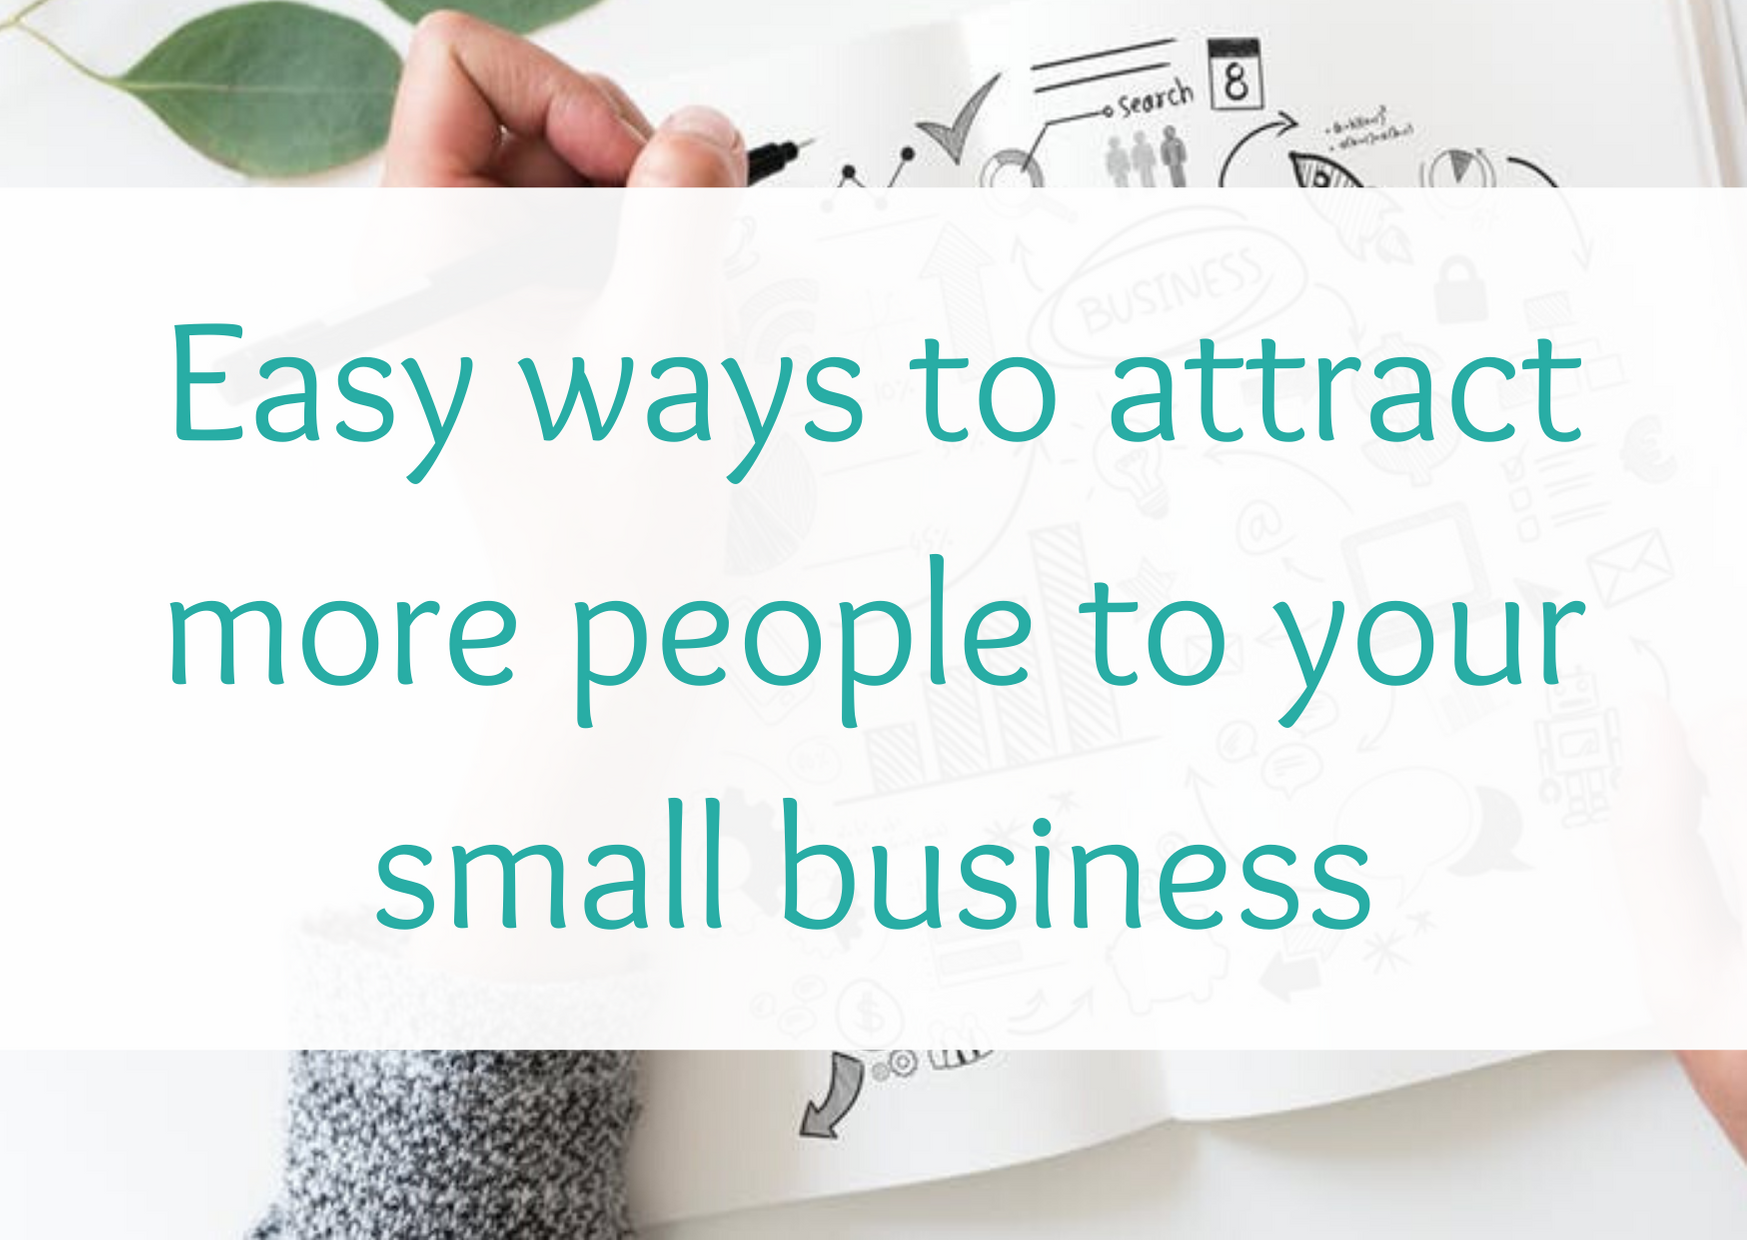 Easy ways to attract more people to your small business